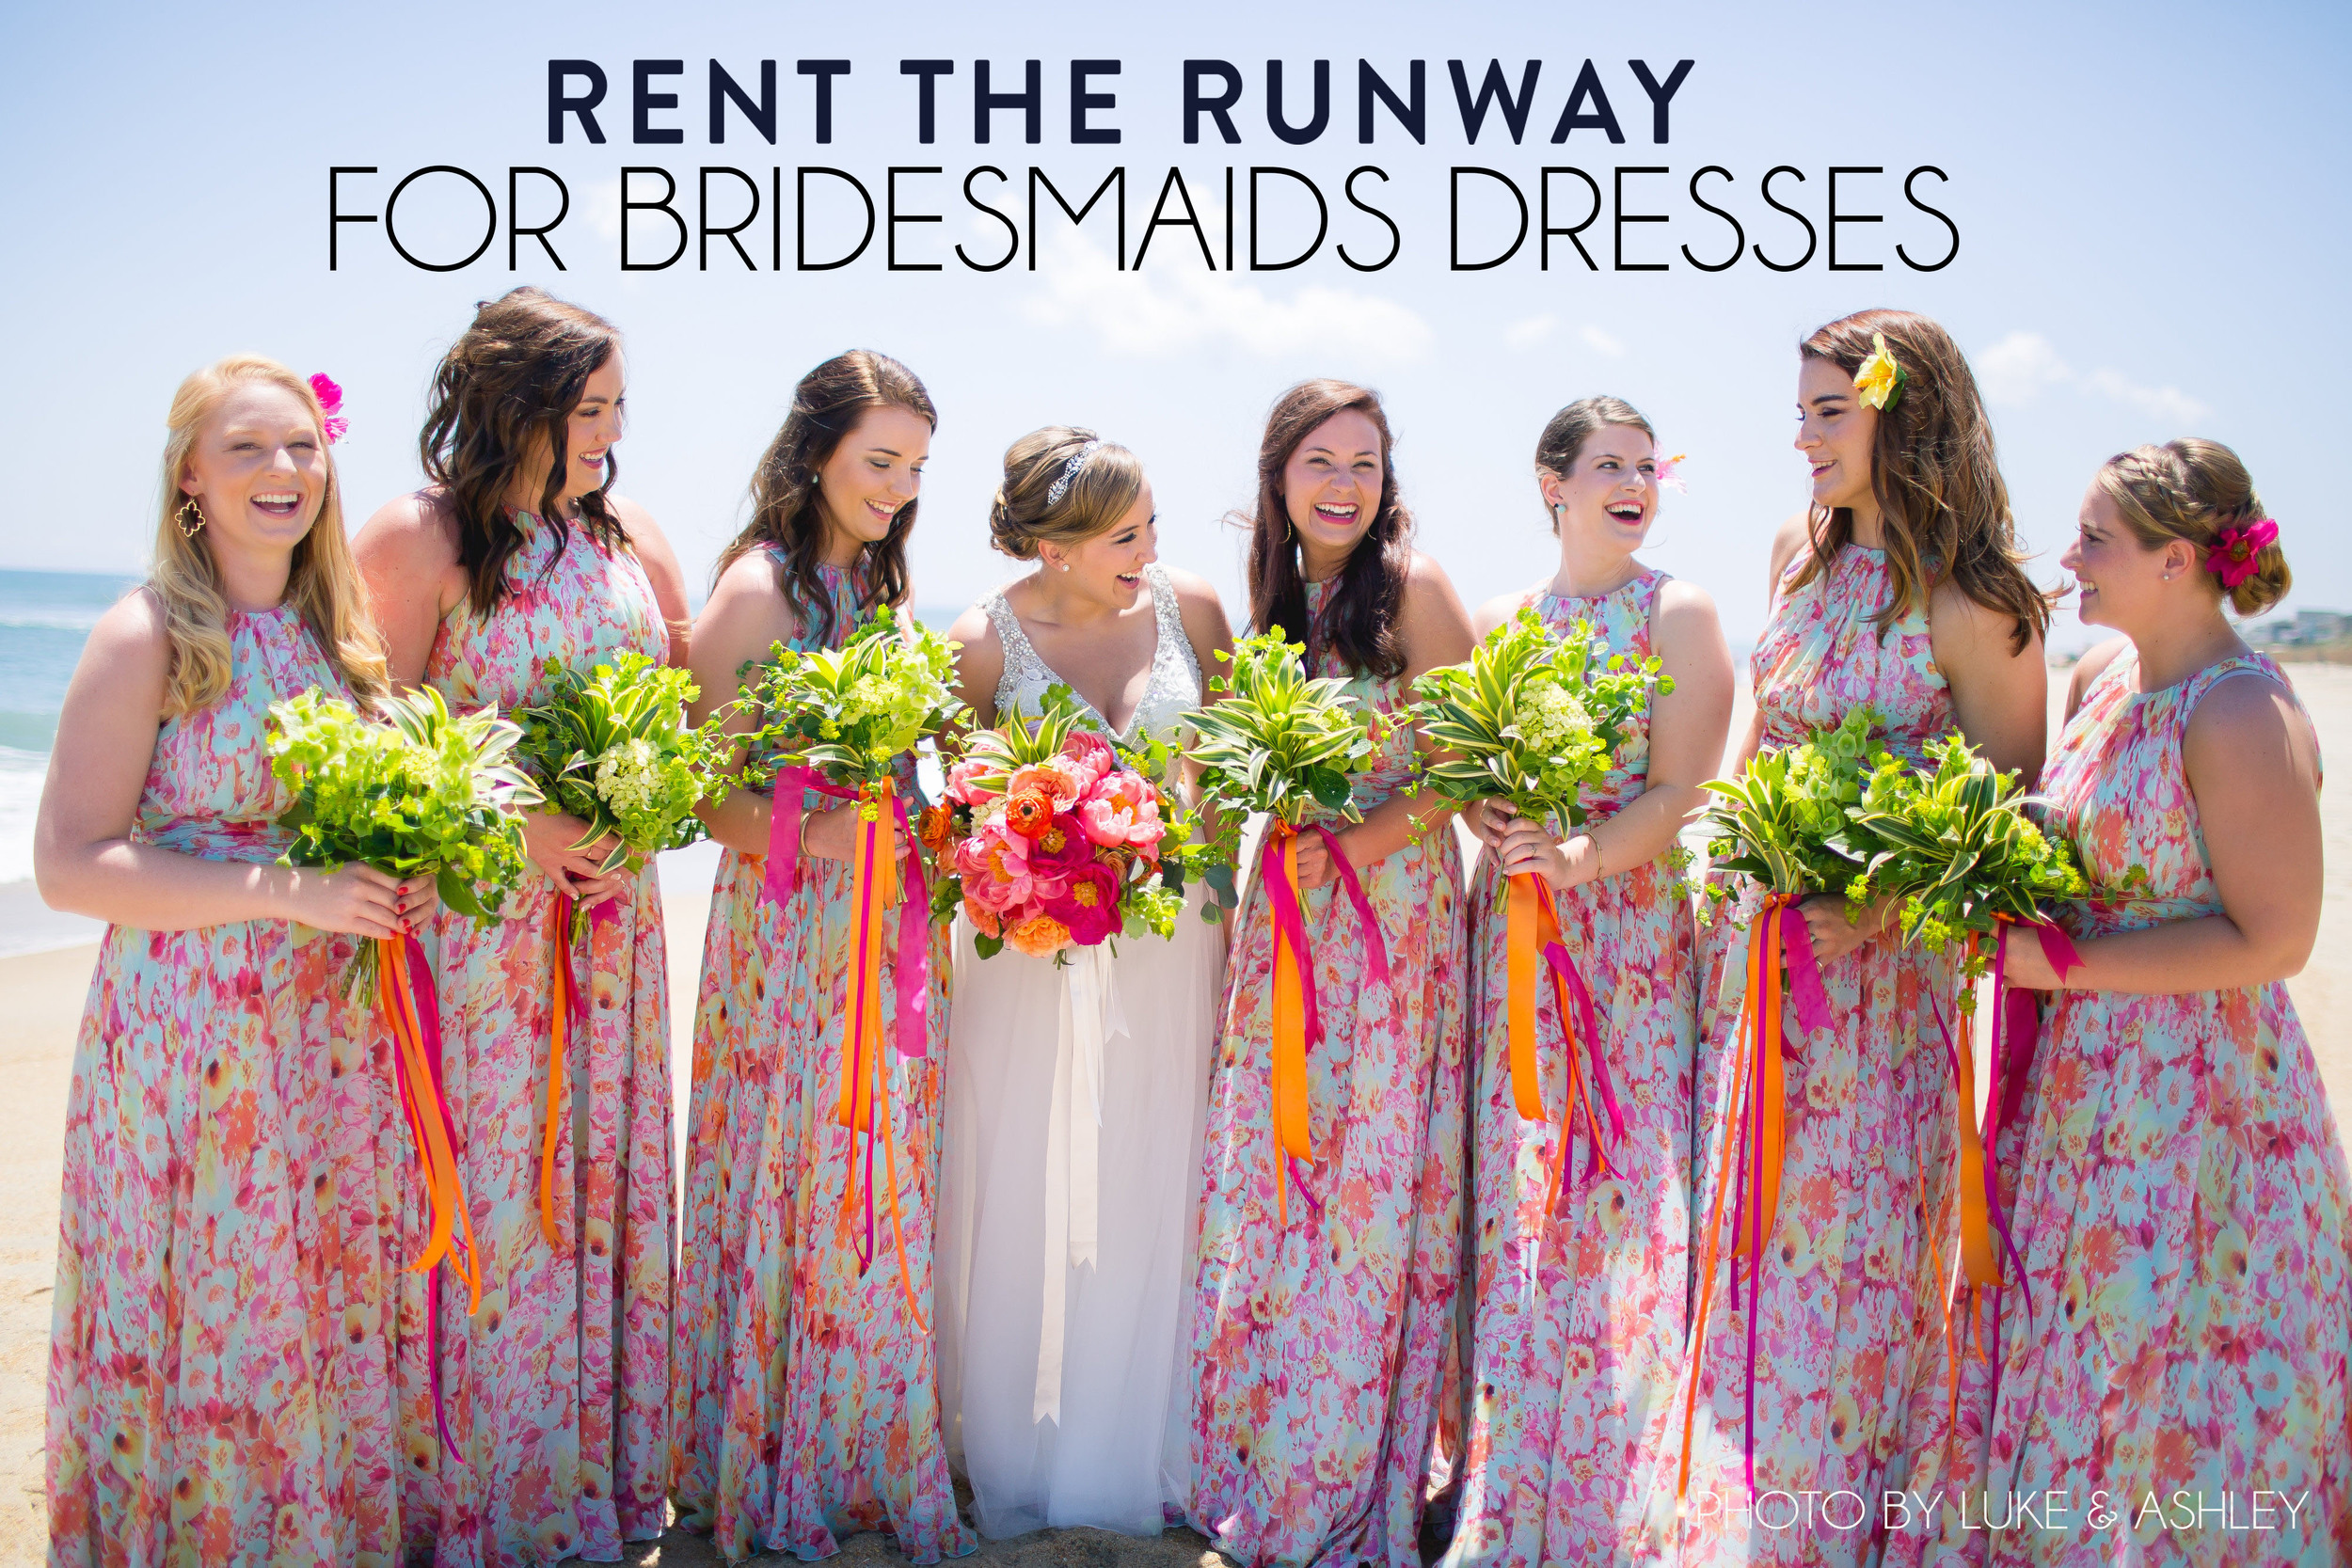 the Runway for Bridesmaids Dresses